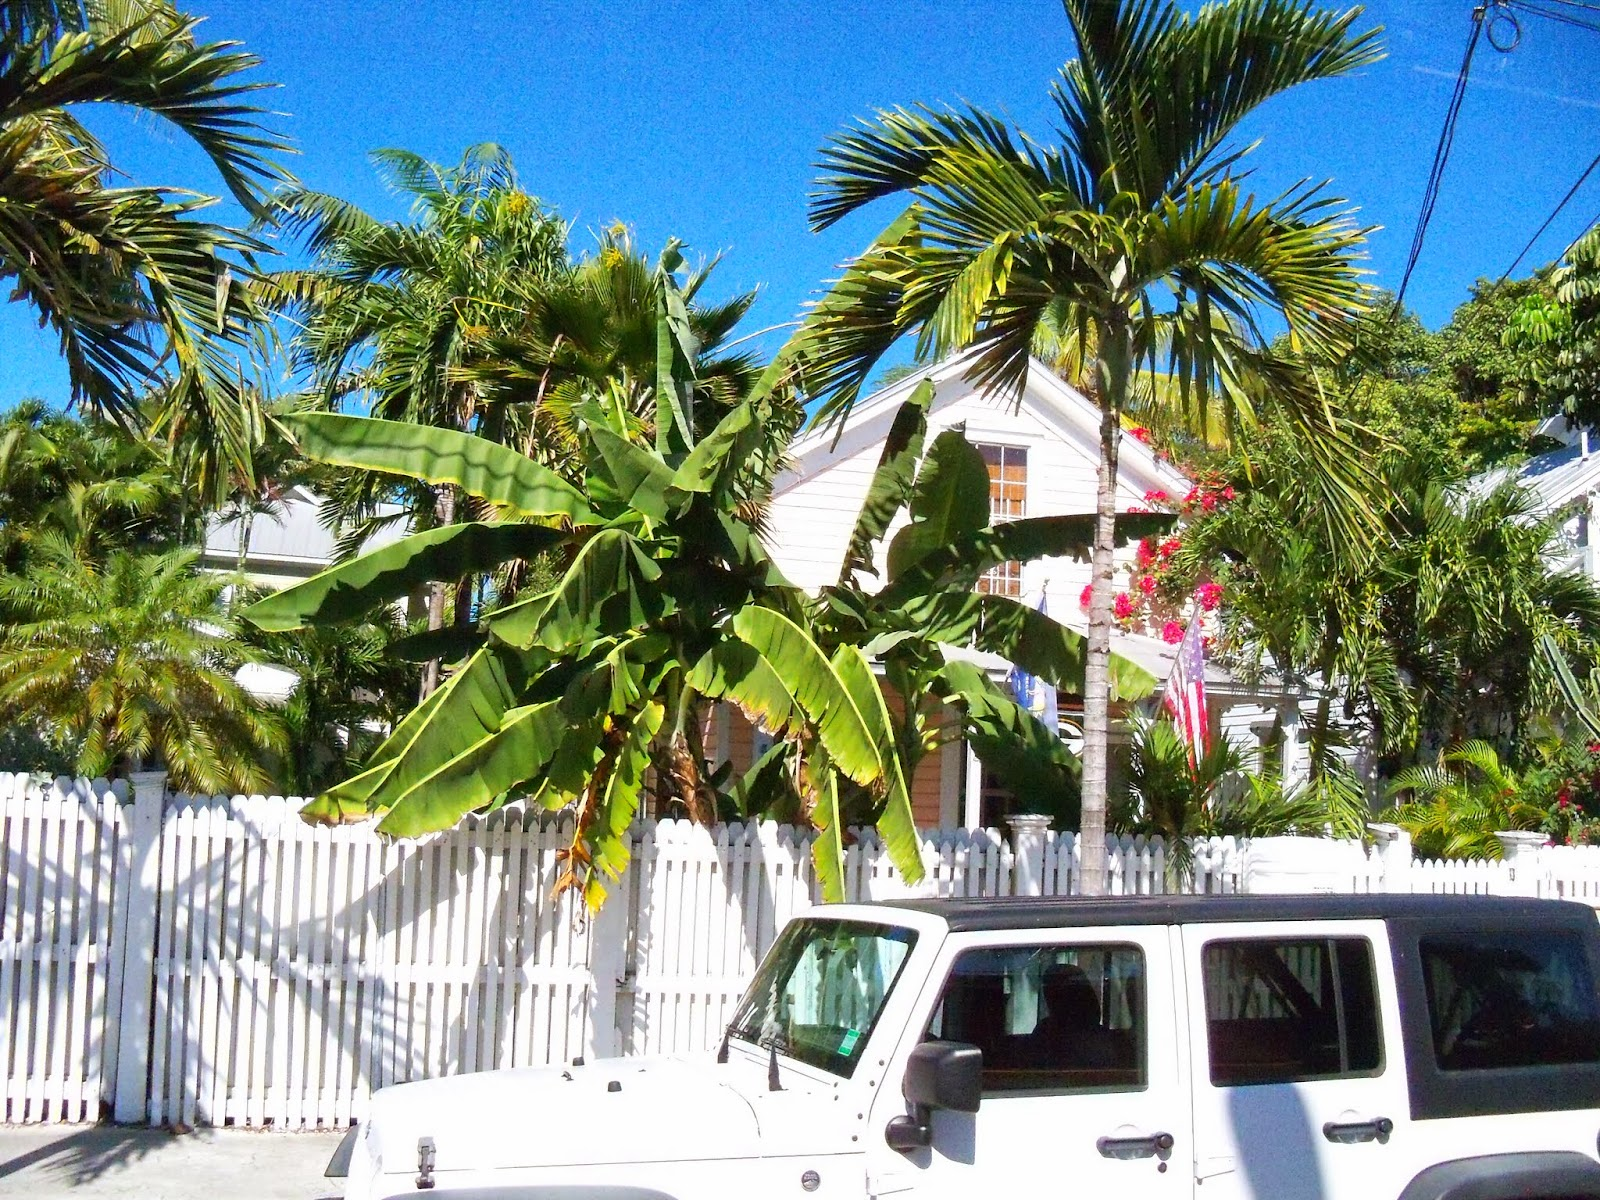 Key West Vacation - 116_5821.JPG